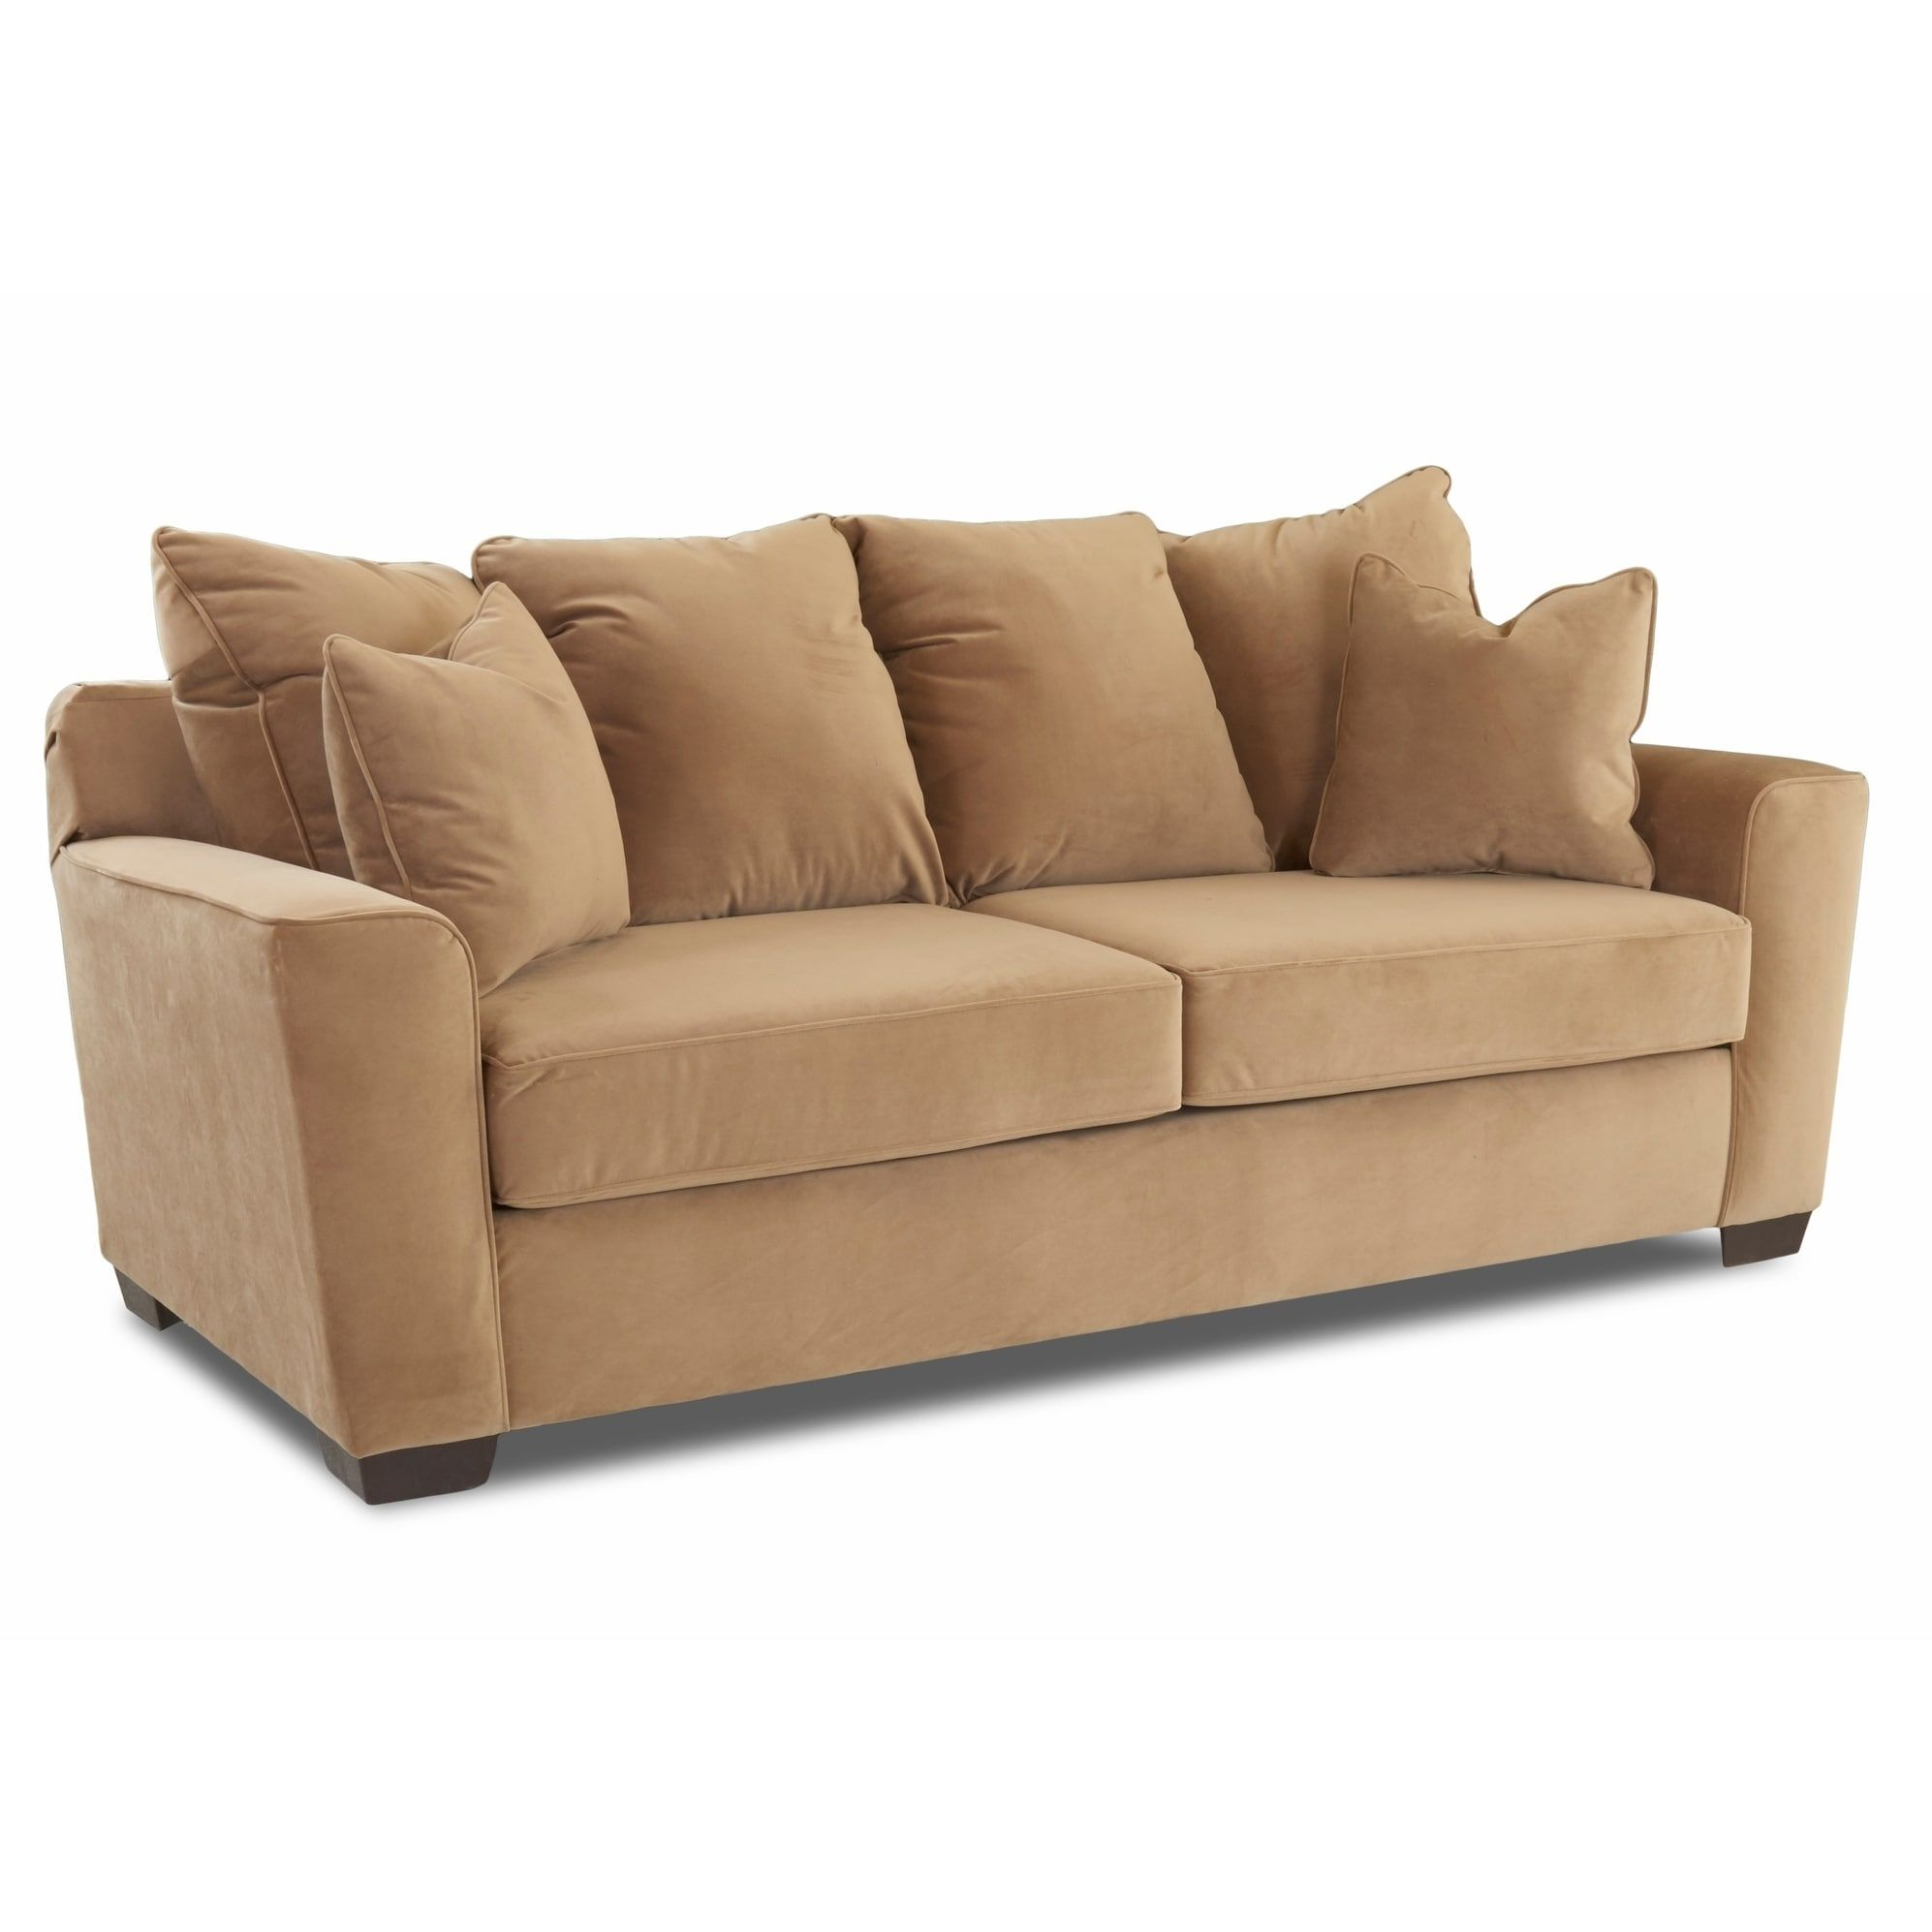 reviewsmicrofiber recliners india of size microfiber ideas phoenix sofa bed full beds photos bafflingber fabricmicrofiber tag baffling stains fabric tags